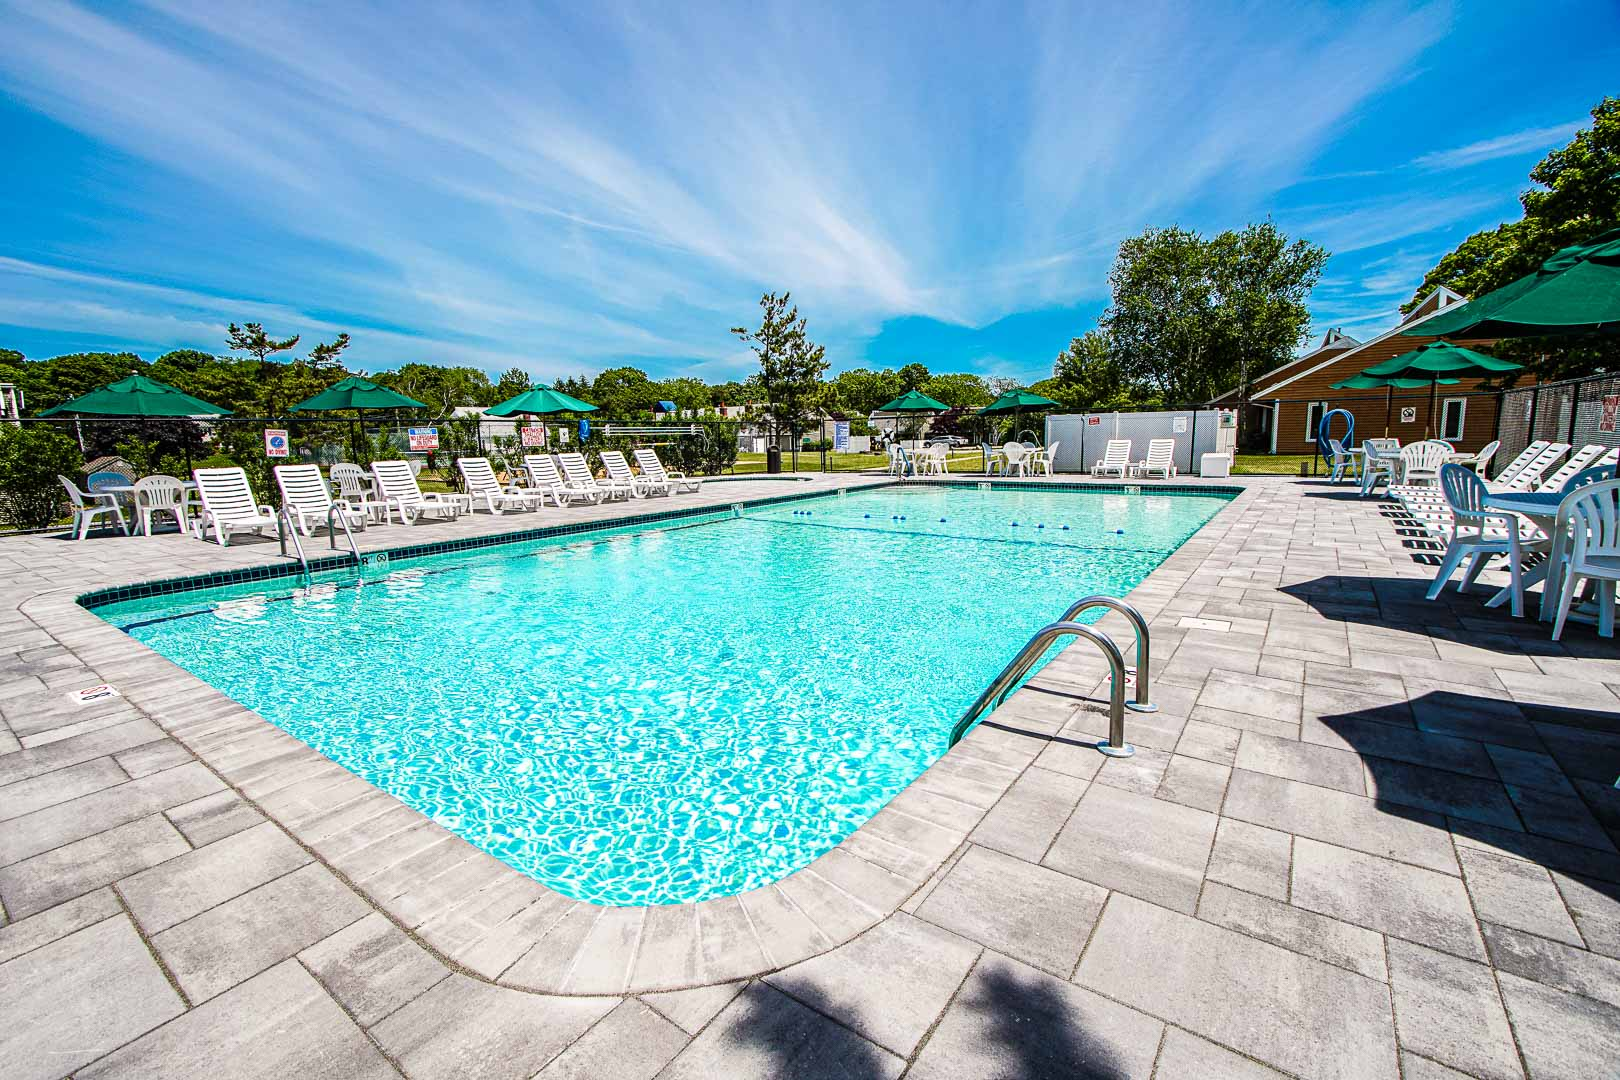 A expansive view of the outdoor swimming pool at VRI's Brewster Green Resort in Massachusetts.